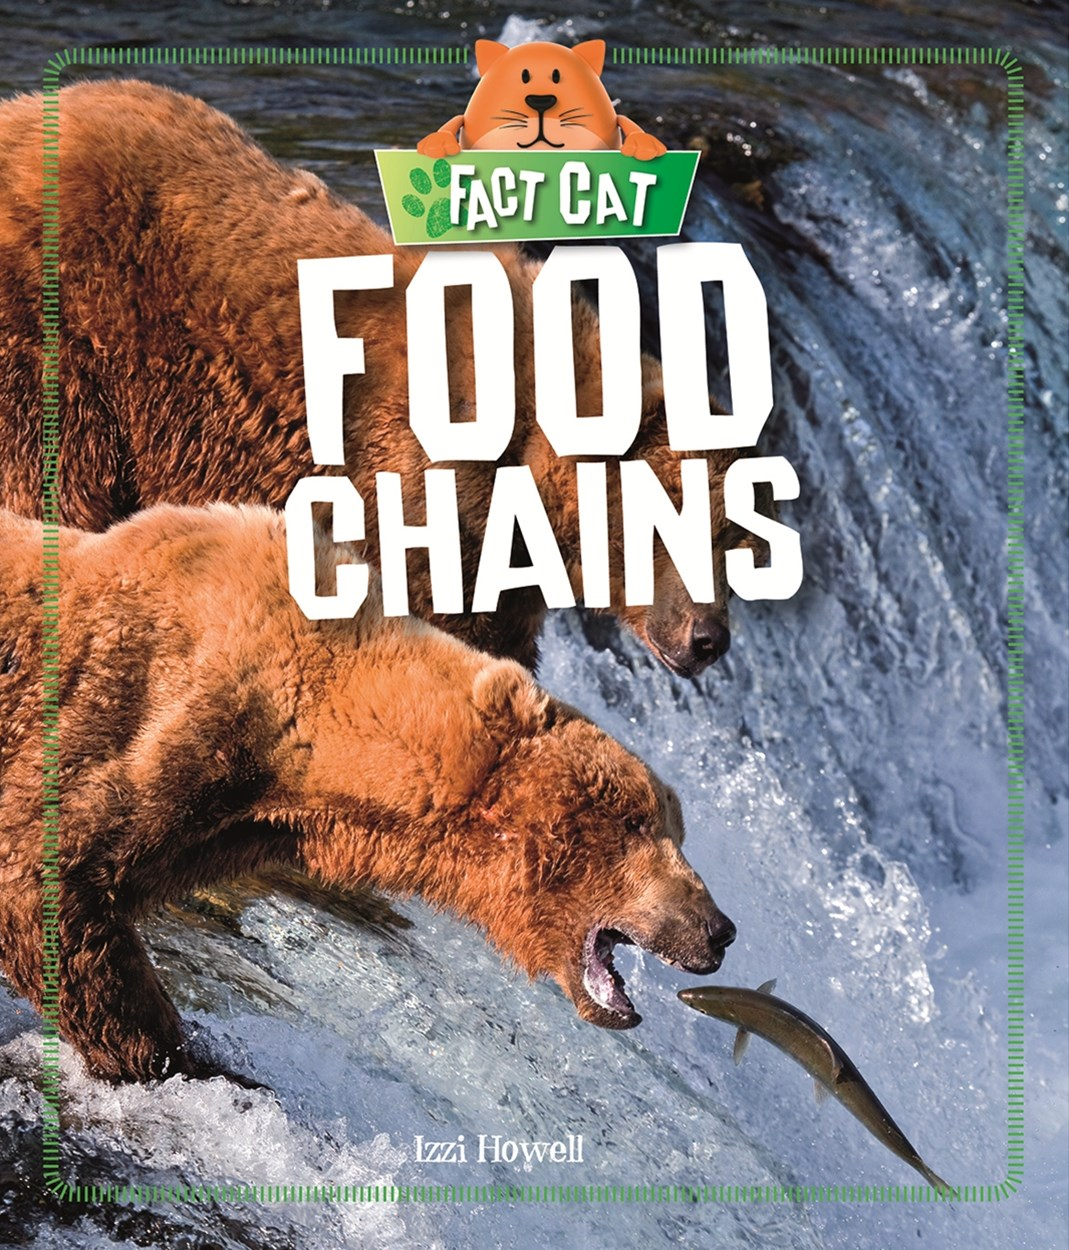 Fact Cat: Science: Food Chains